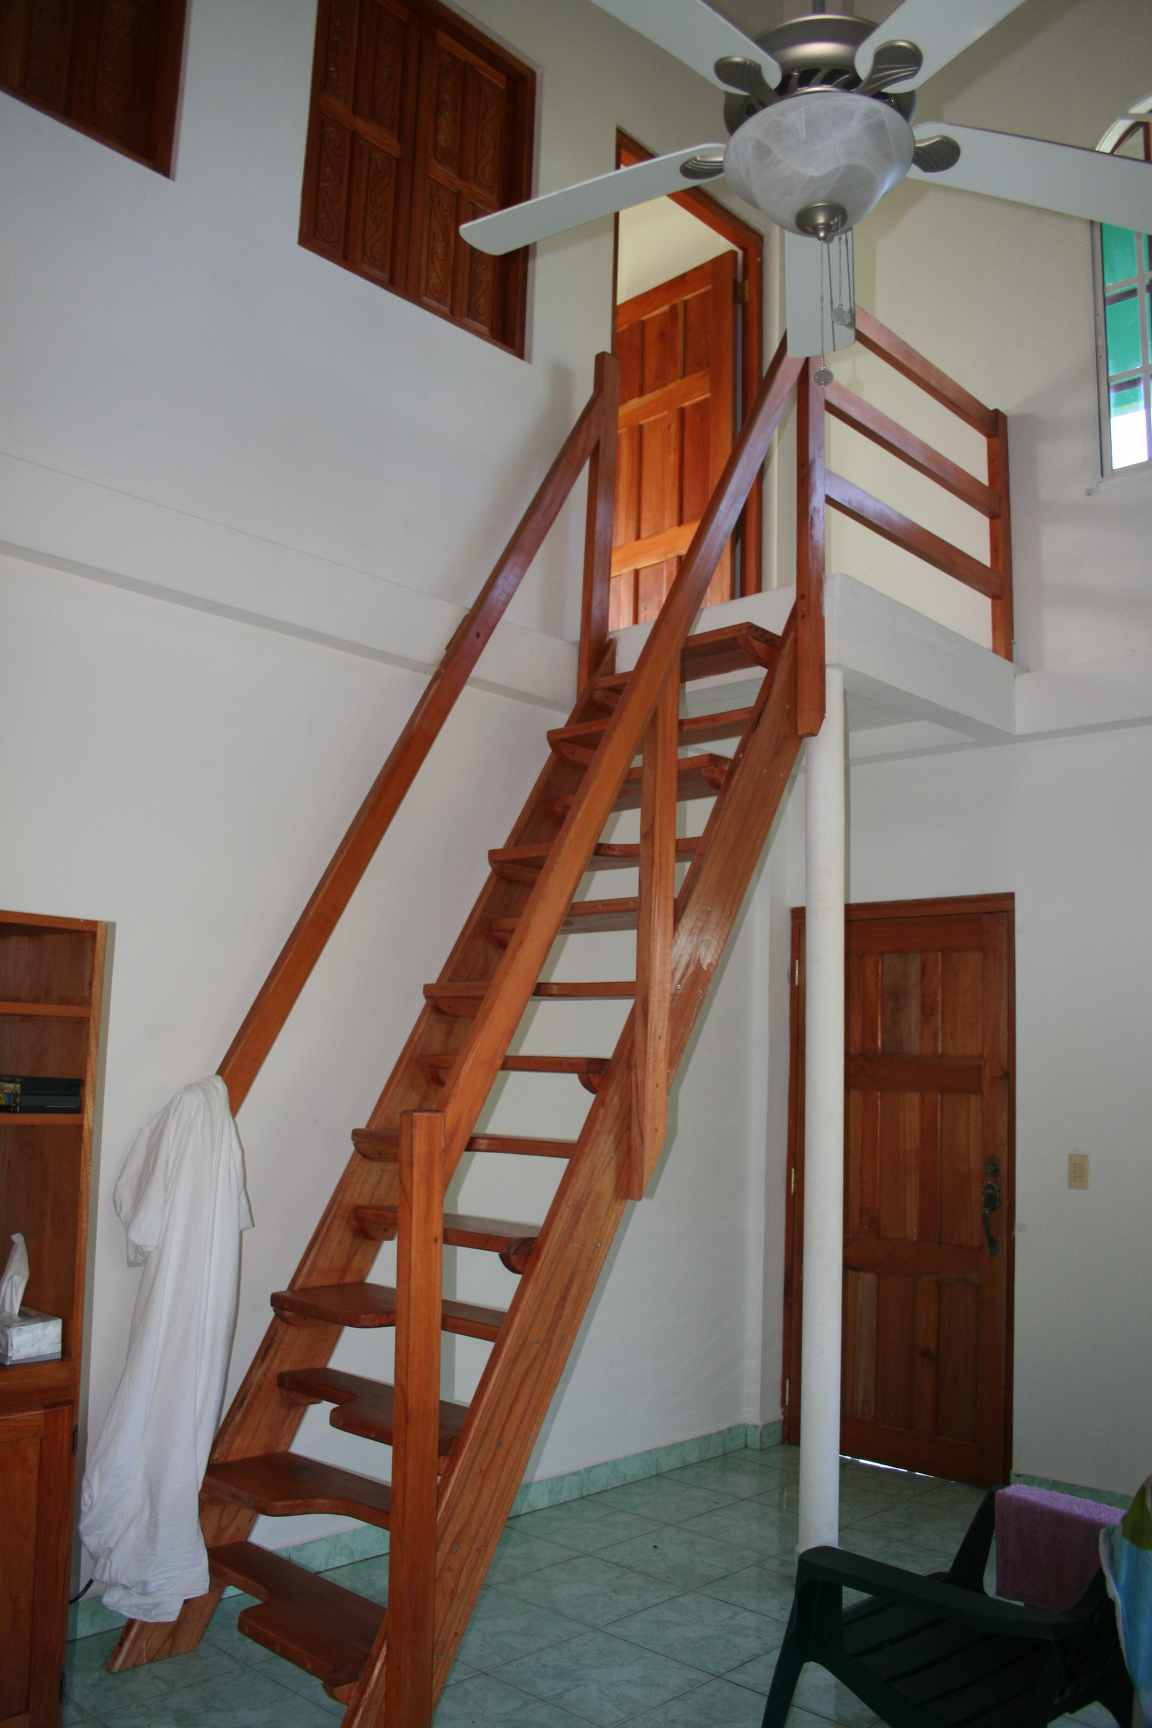 Upstairs at La Casa Verede Panama